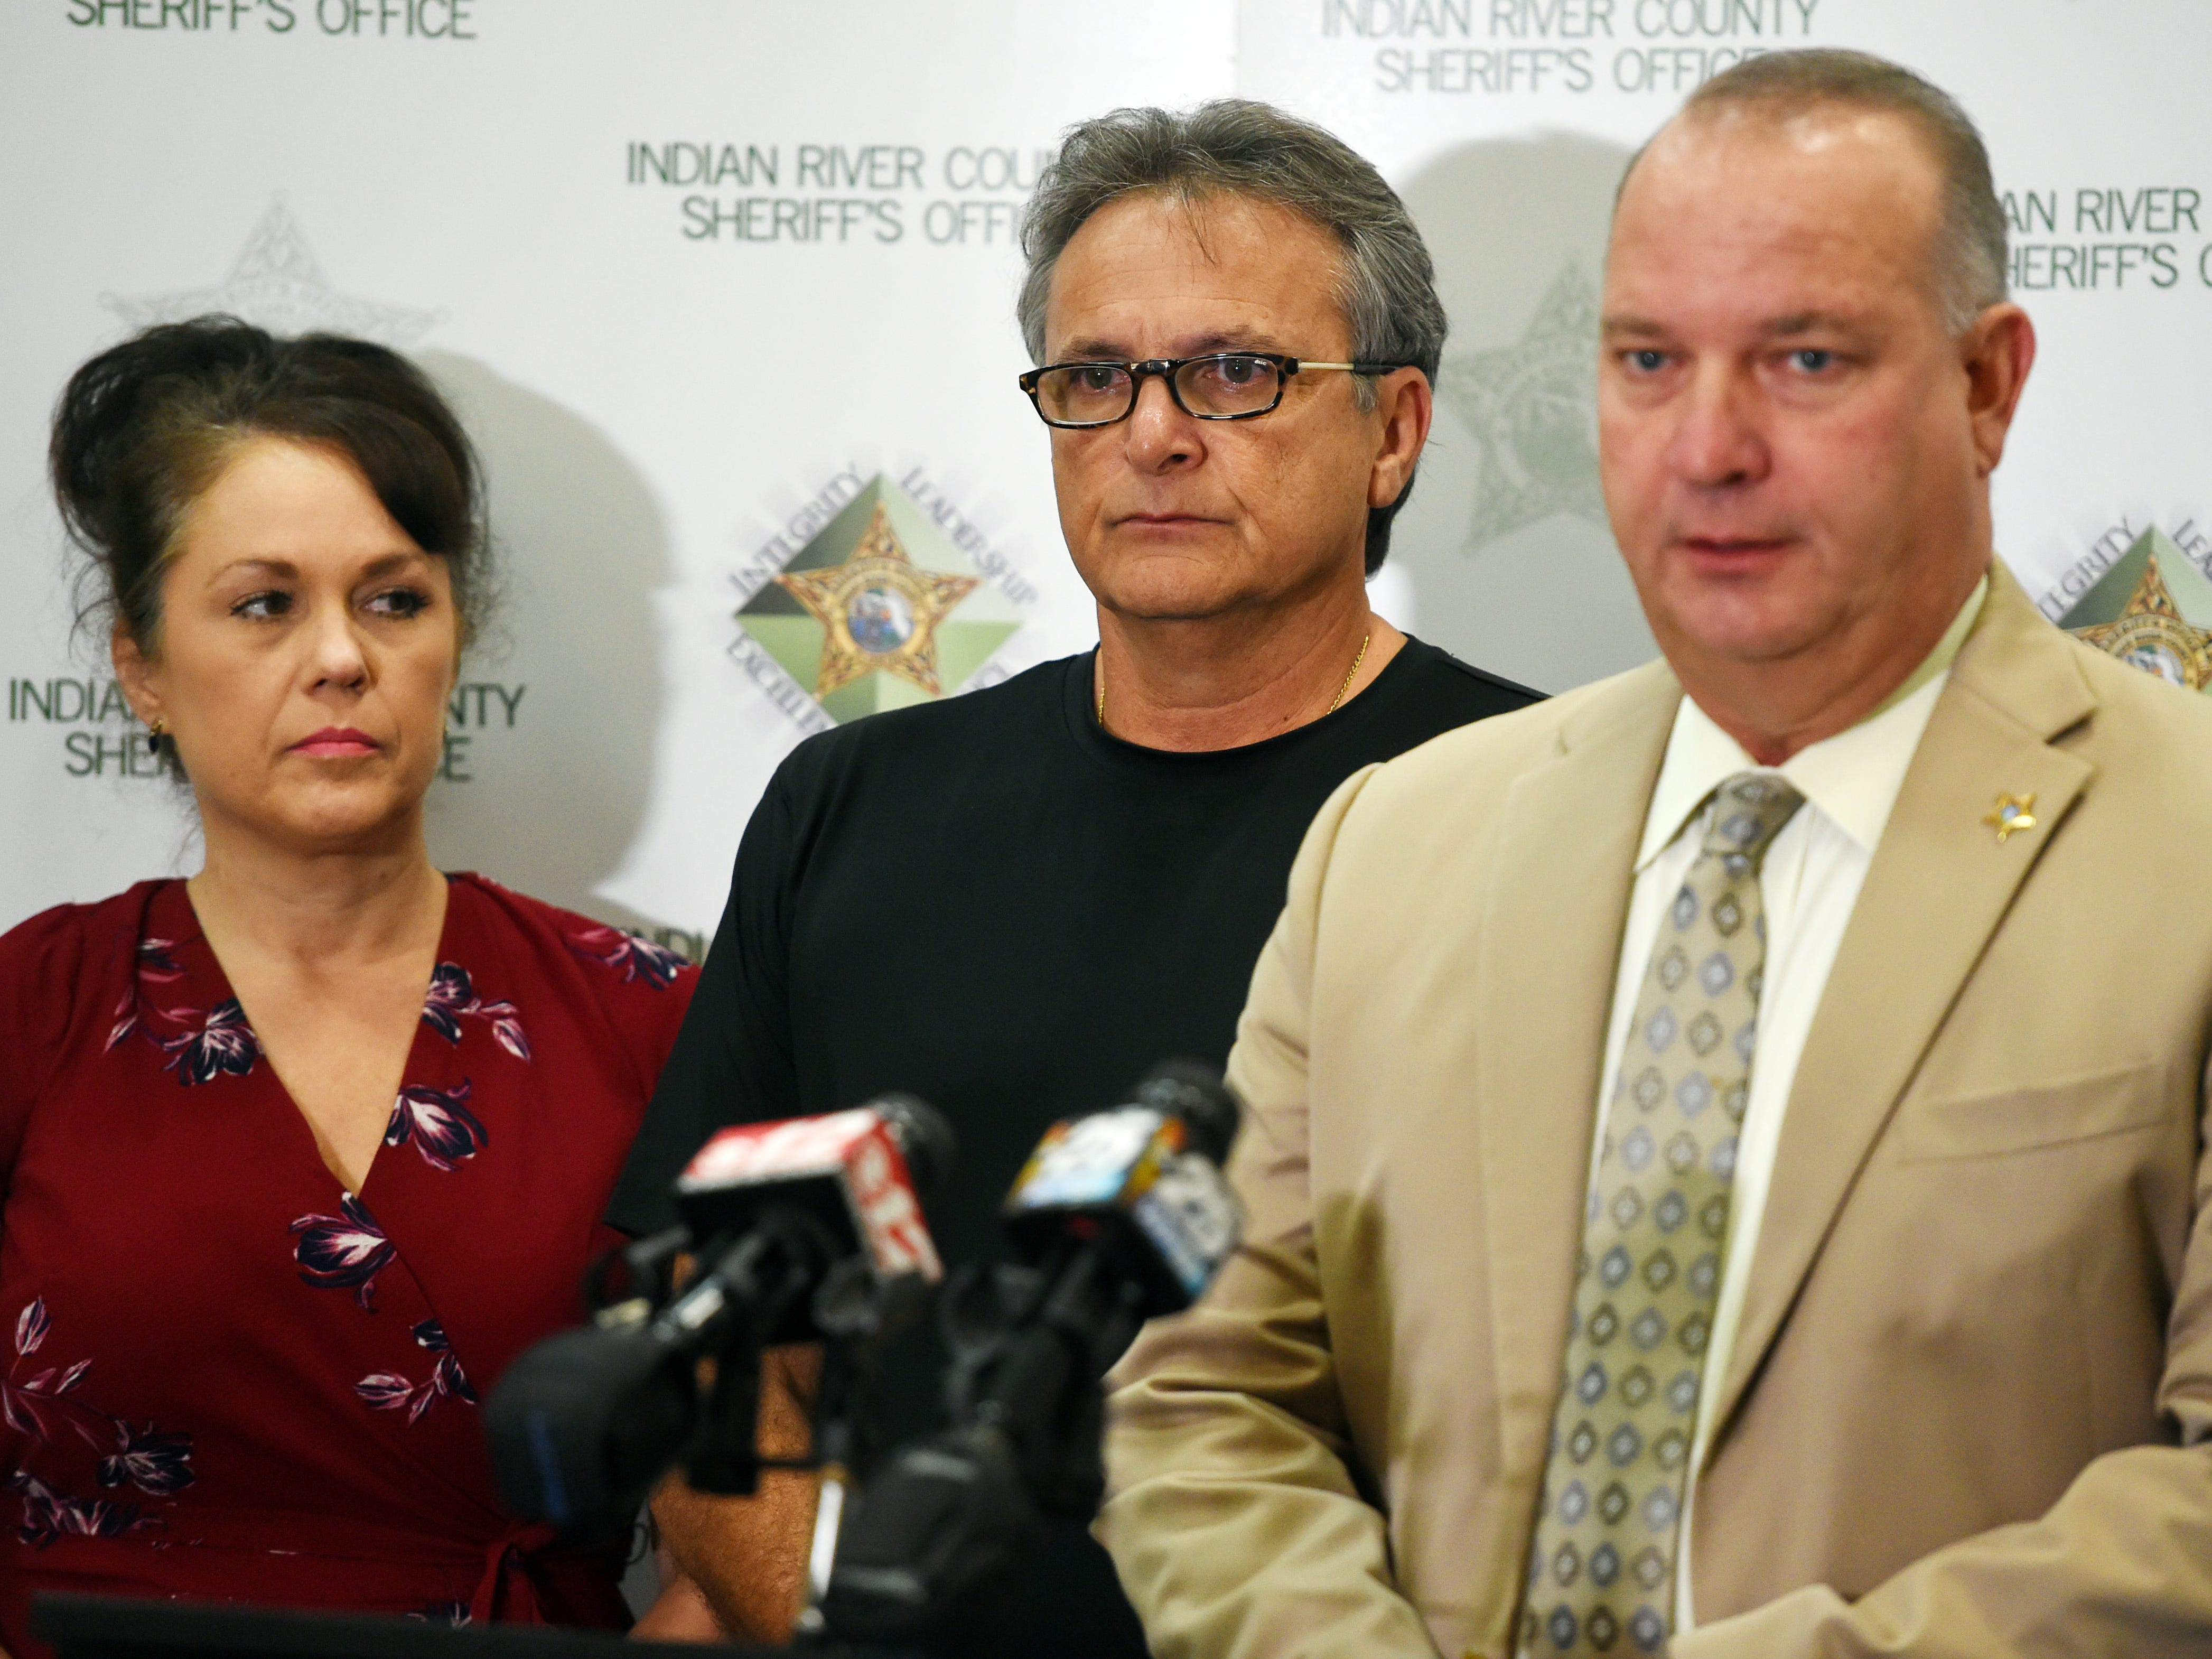 The family of Susy Tomassi is pleading to the public for information concerning her disappearance on March 16 from the family restaurant, the Quilted Giraffe. Tomassi, 73, who suffers from dementia, was last seen on security cameras in the South Vero Square plaza. The family is offering a $15,000 reward for her safe return. Anyone who has information concerning Tomassi's disappearance is encourage to contact the Indian River County Sheriff's Office.